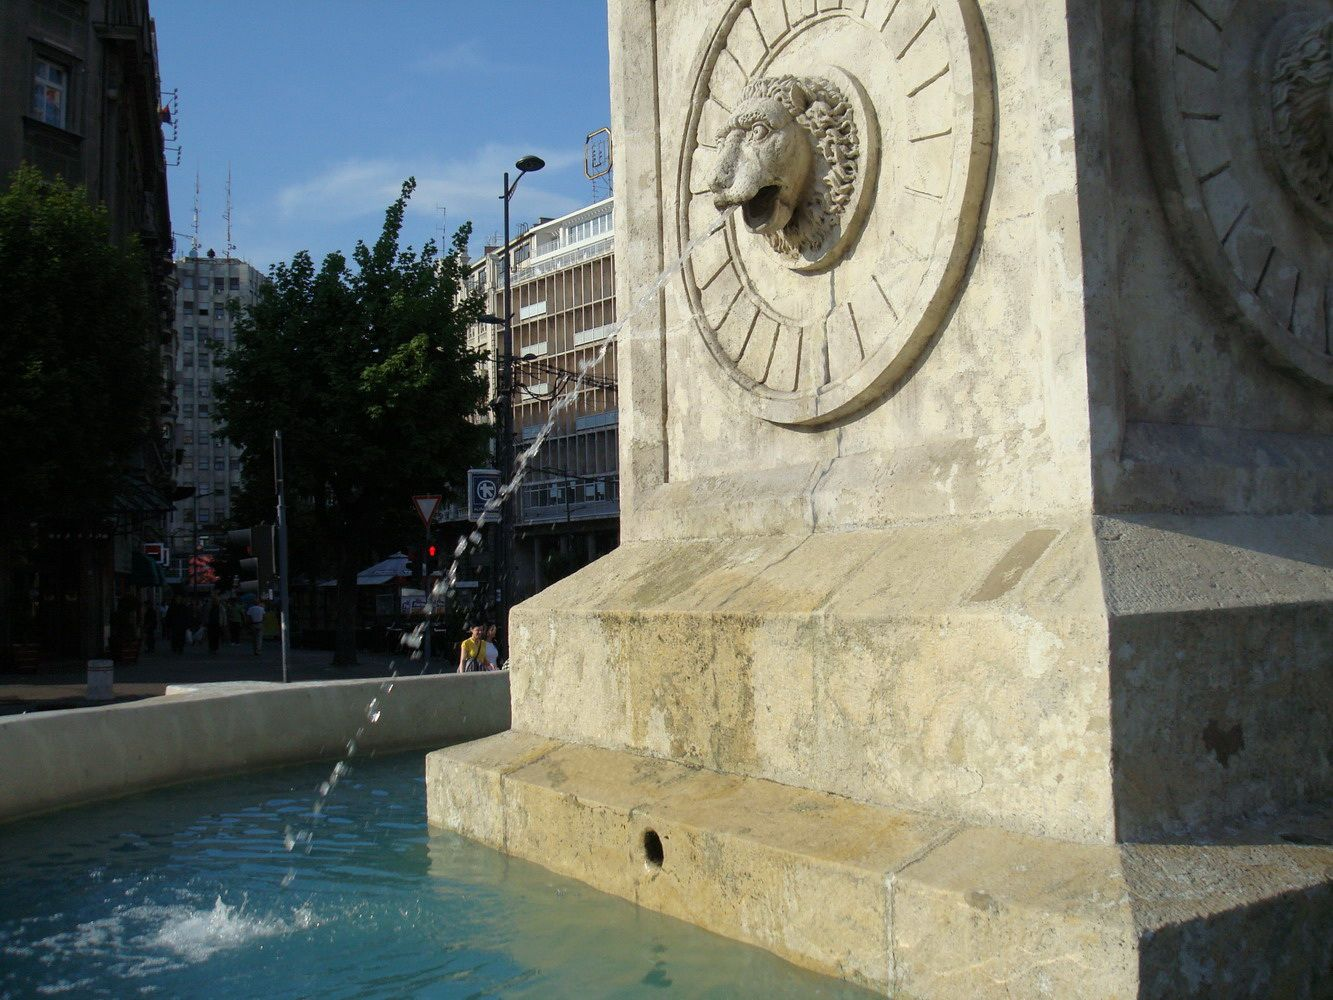 Vucic becomes the 'new king of fountains'